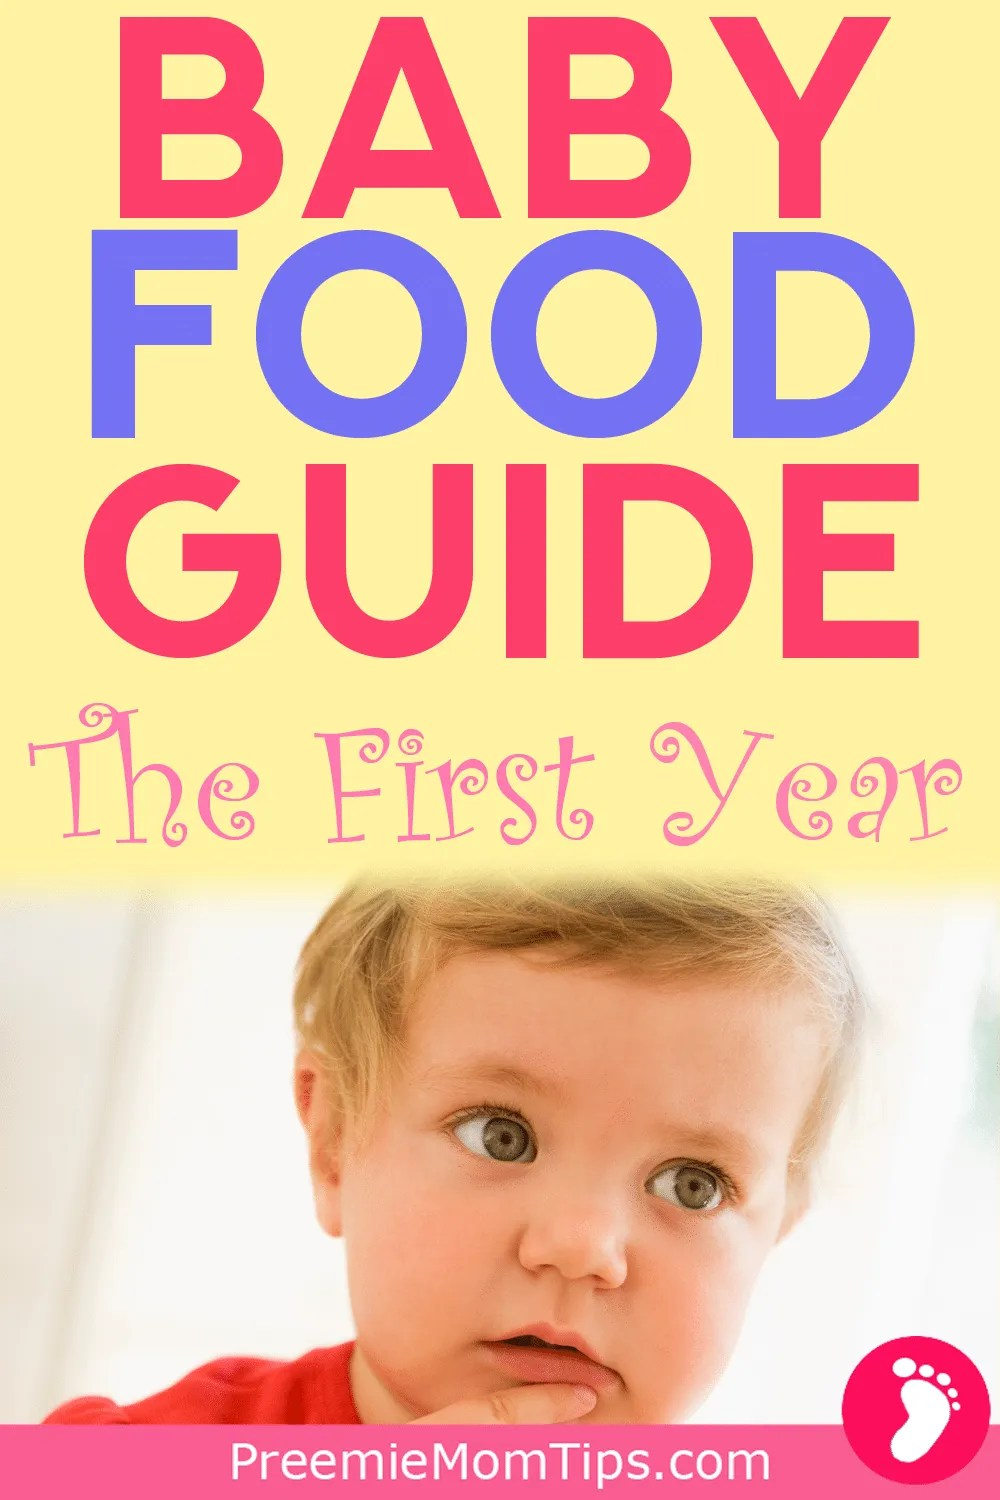 How do you know your baby is ready to start eating solids? What should you feed your baby duiring the first year? Check out all you need to know as a new parent when it comes to feeding your baby!